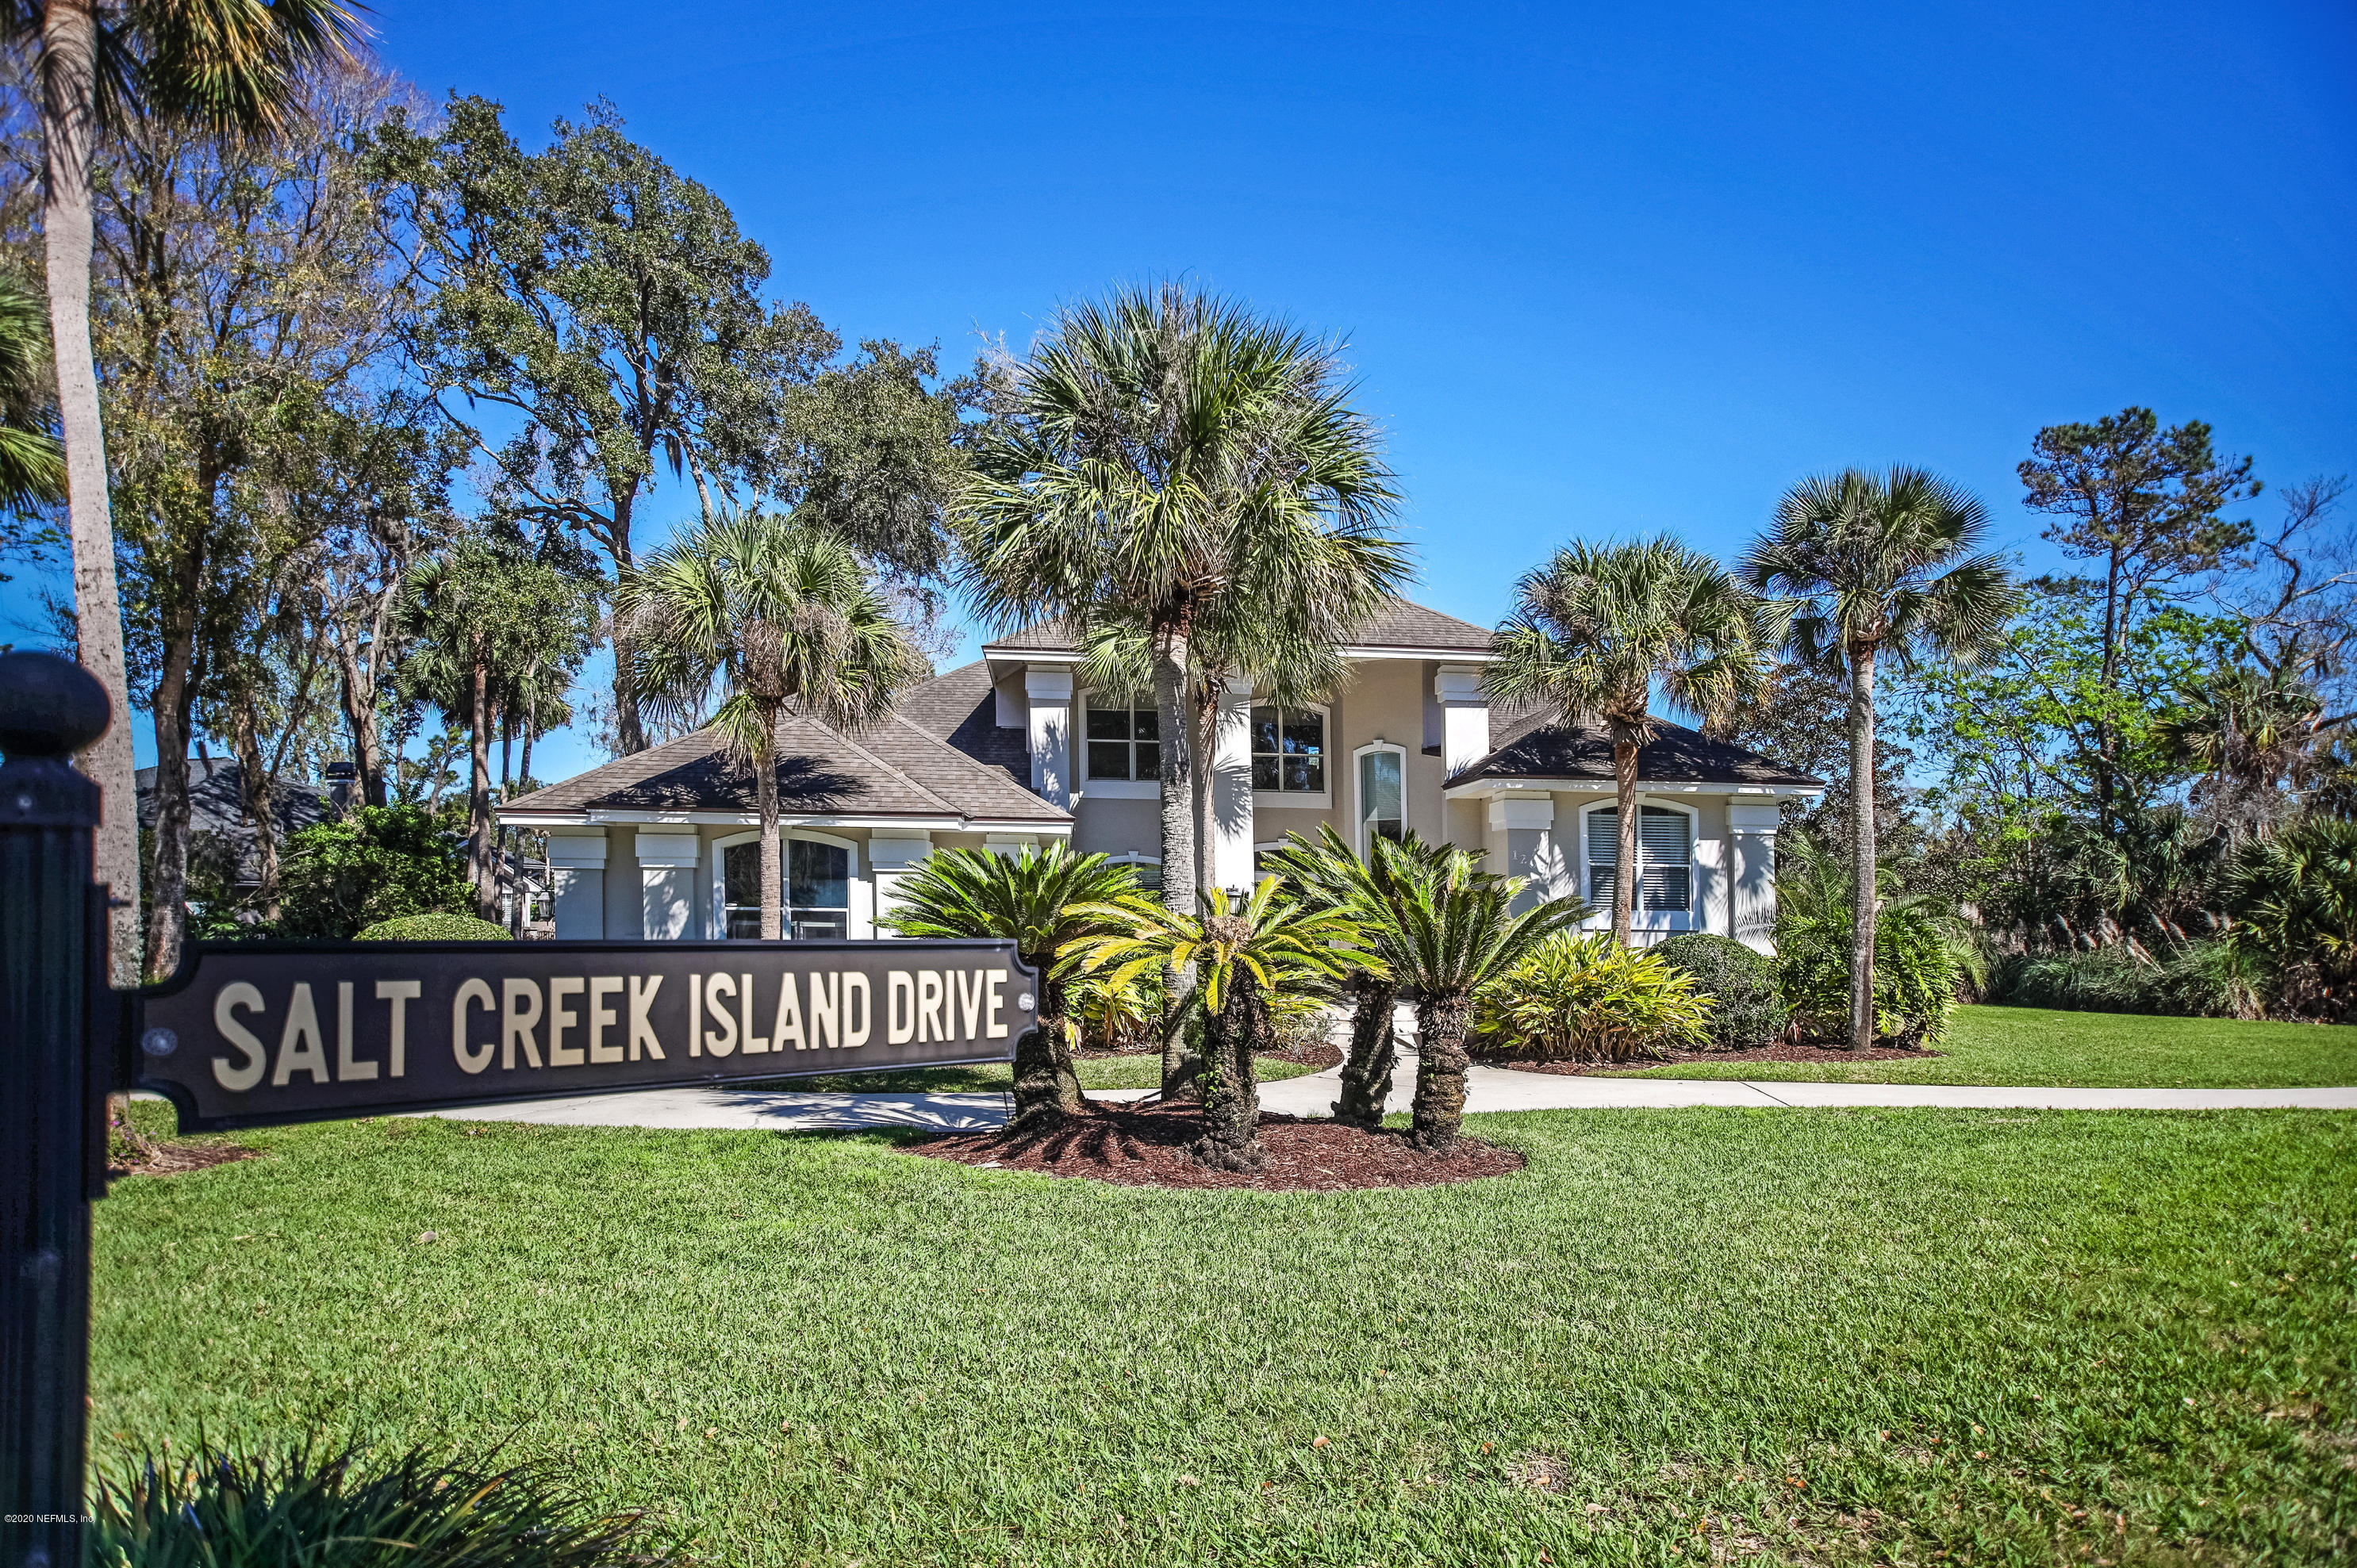 Property for sale at 1203 Salt Creek Island DR, Ponte Vedra Beach,  Florida 32082